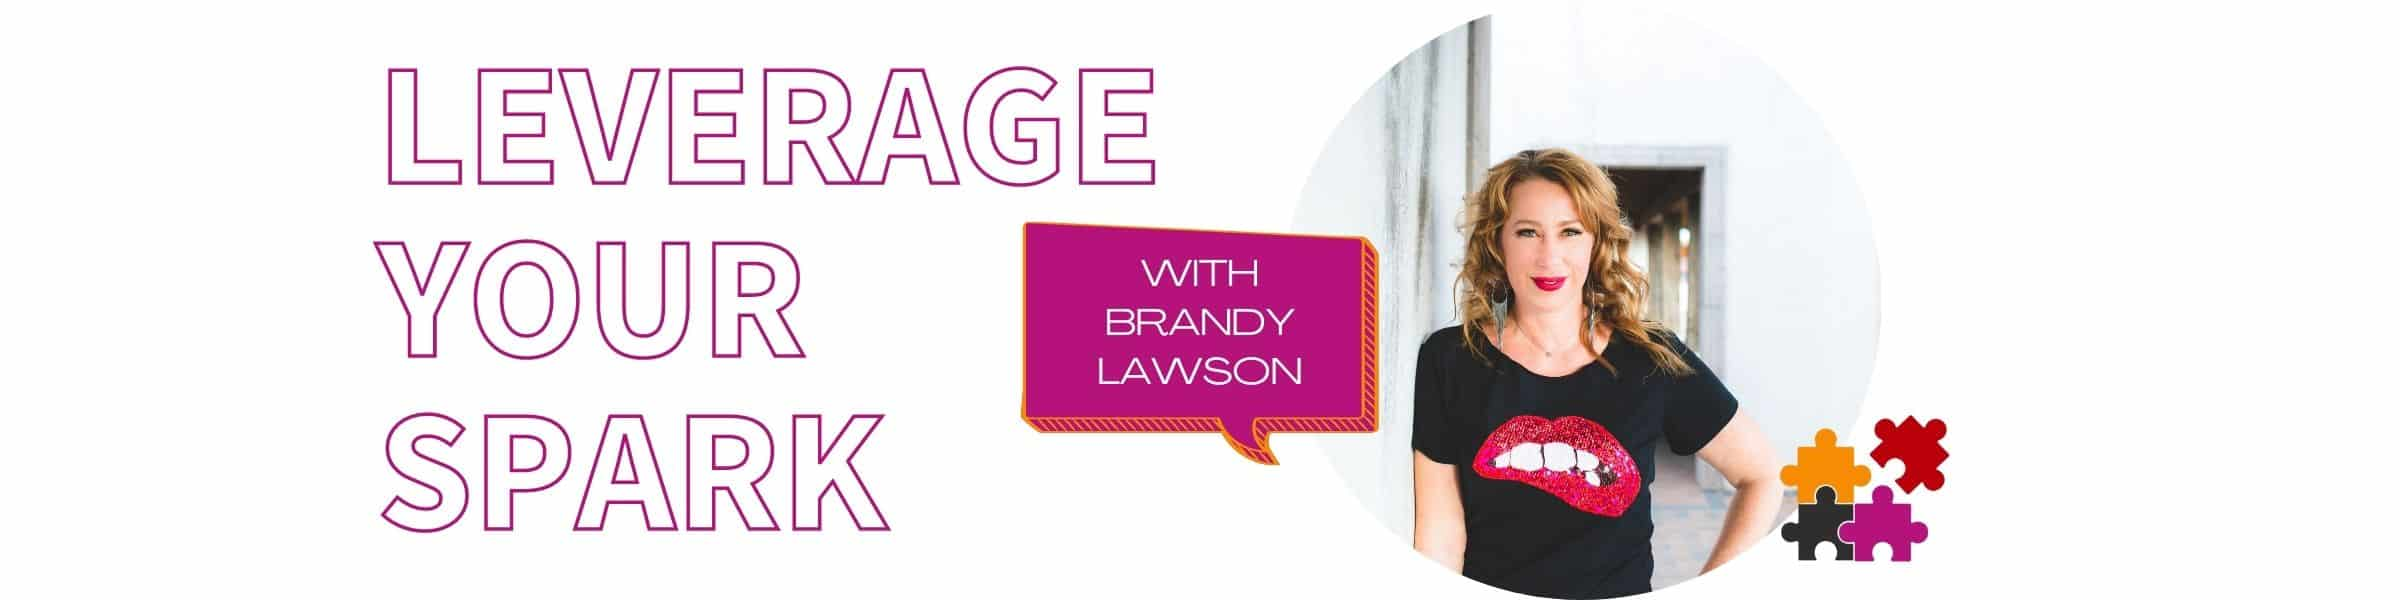 Leverage Your Spark with Brandy Lawson